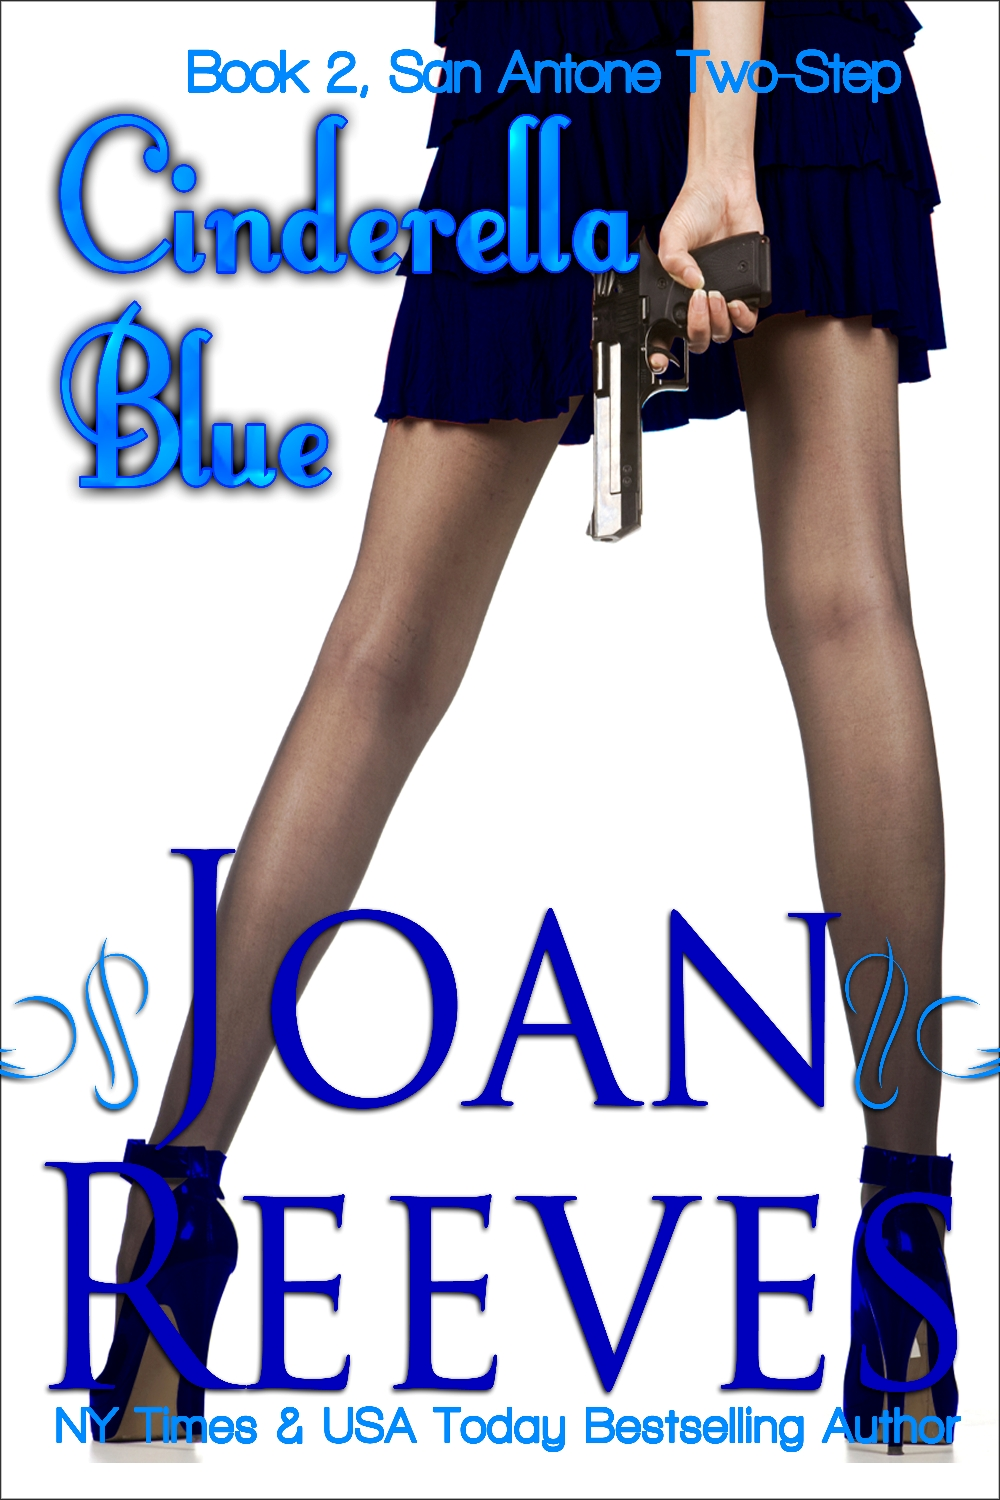 <b>San Antone Two-Step: Book 2</b>